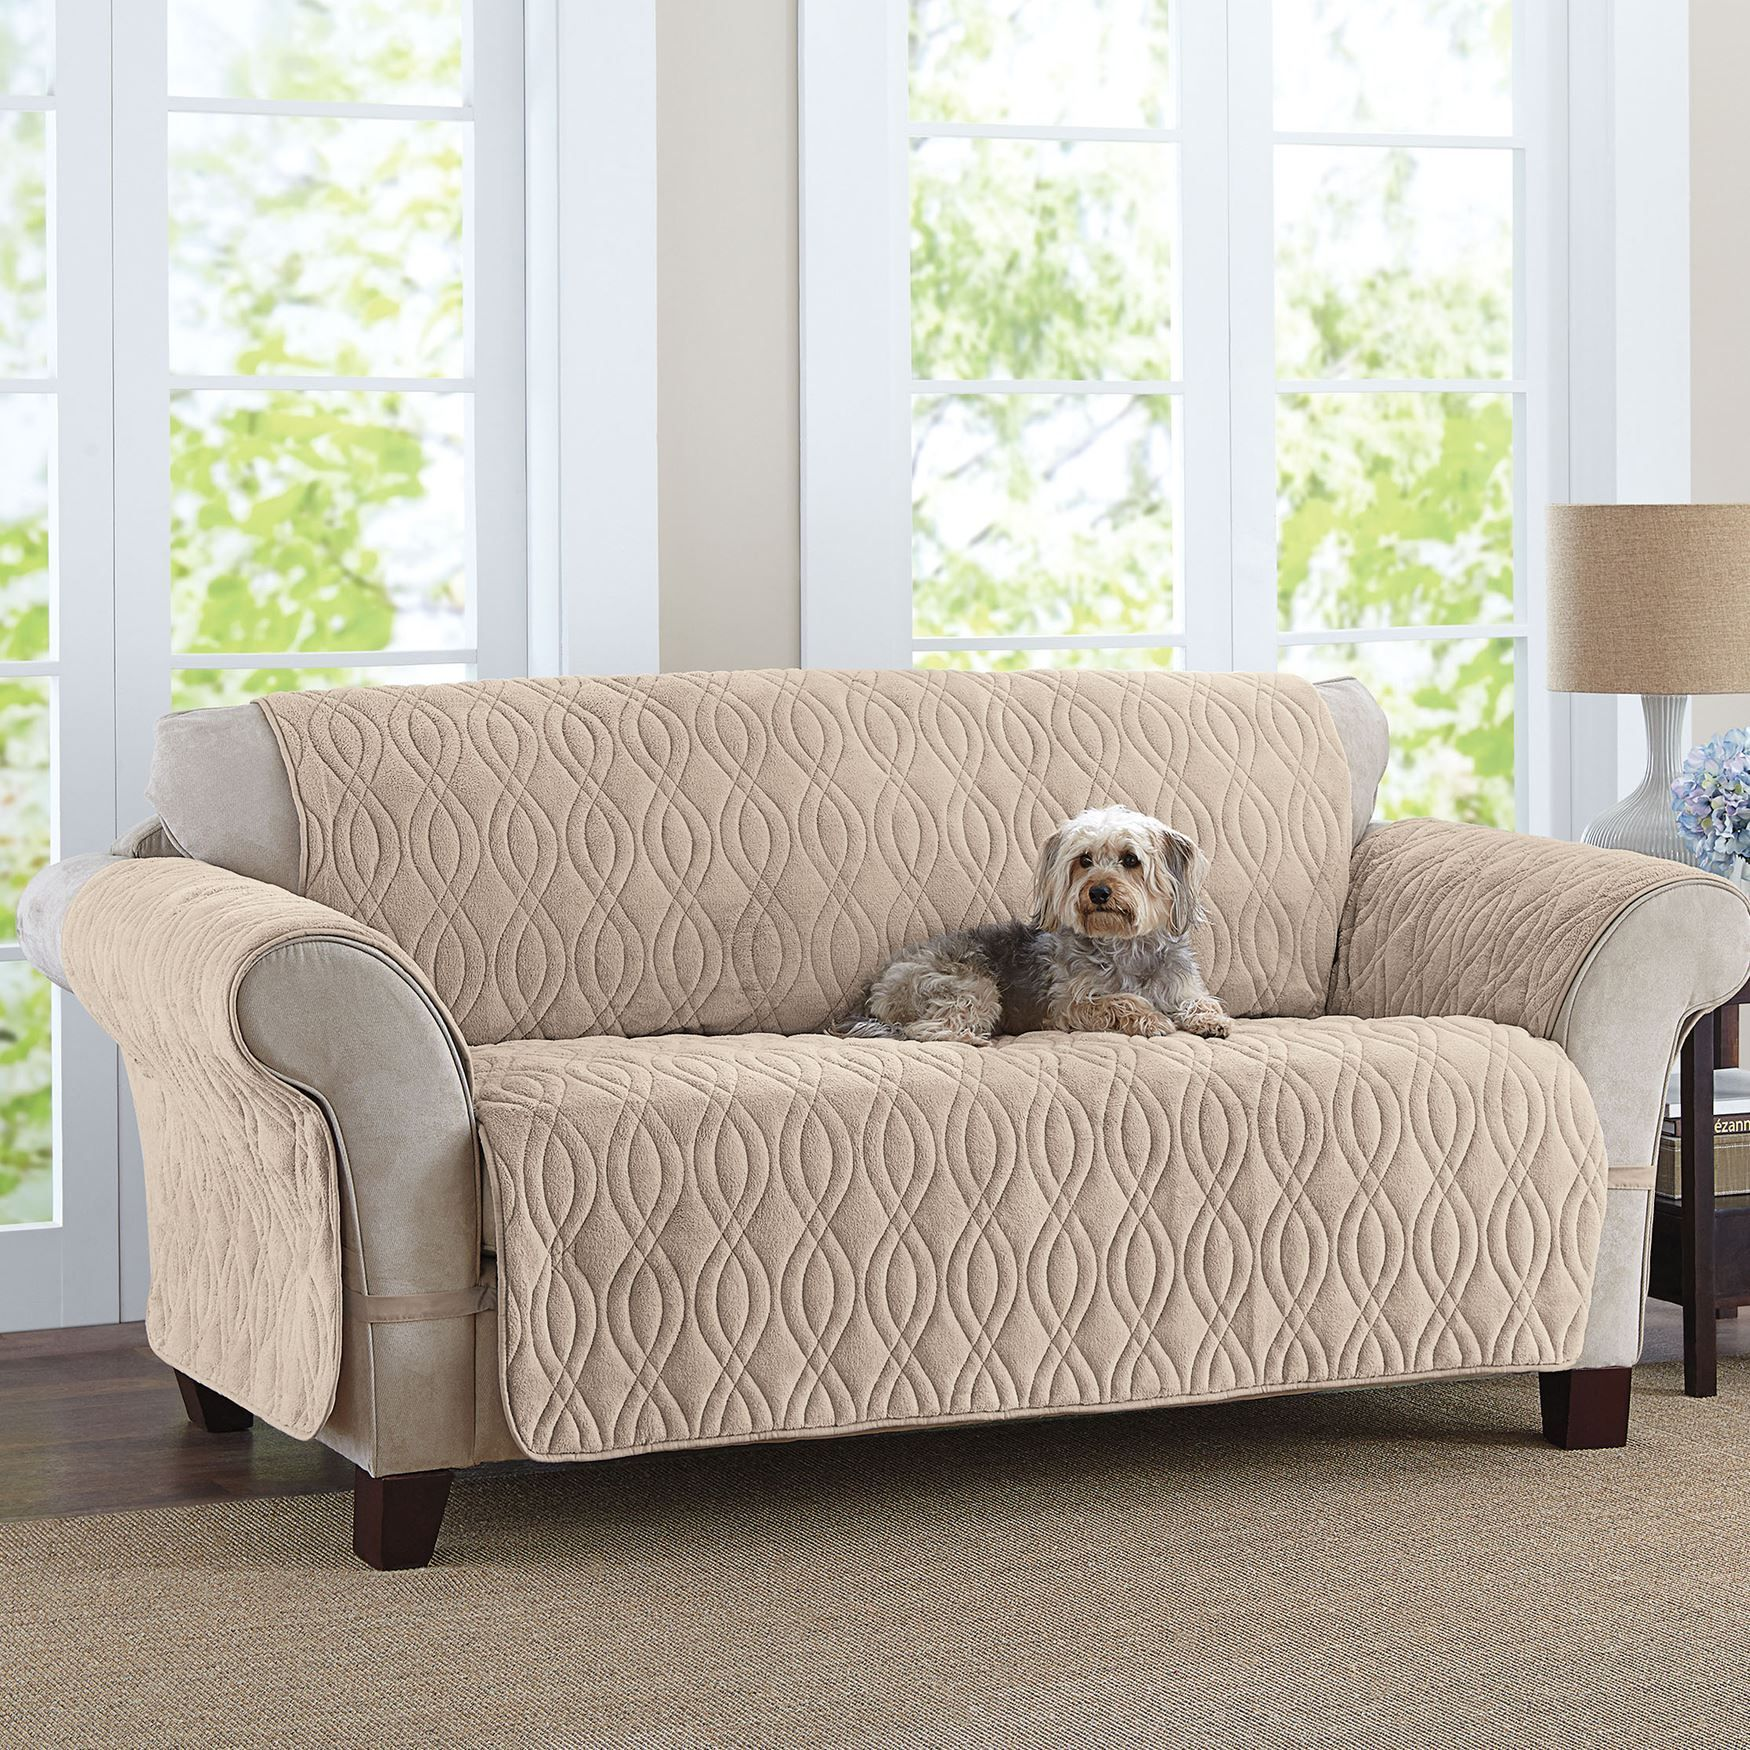 This deluxe quilted, fleecelike sofa cover is designed to